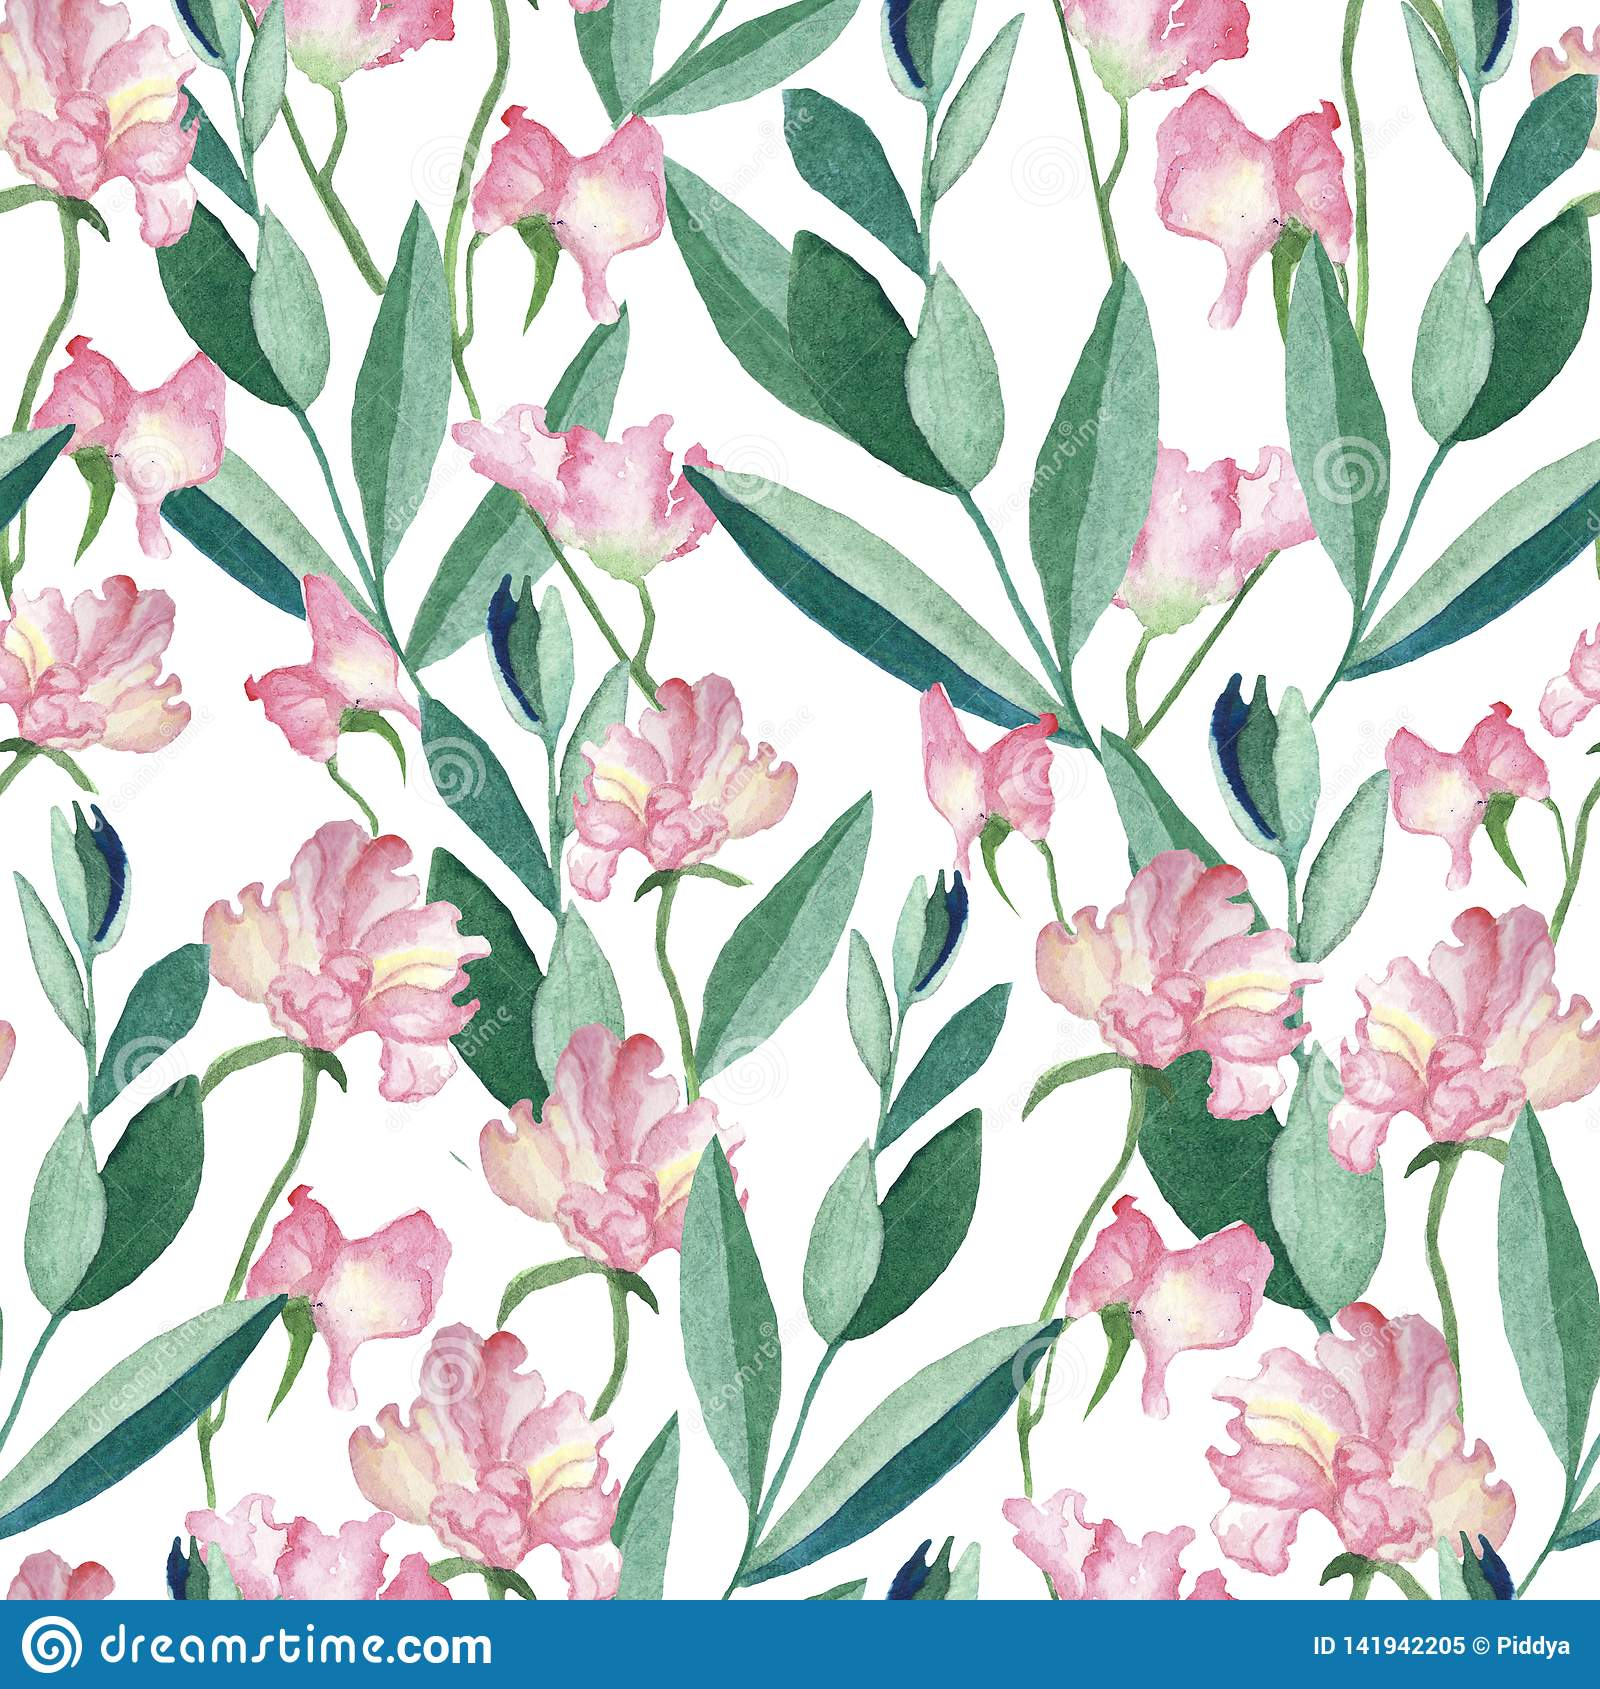 Seamless pattern with watercolor flowers and leaves